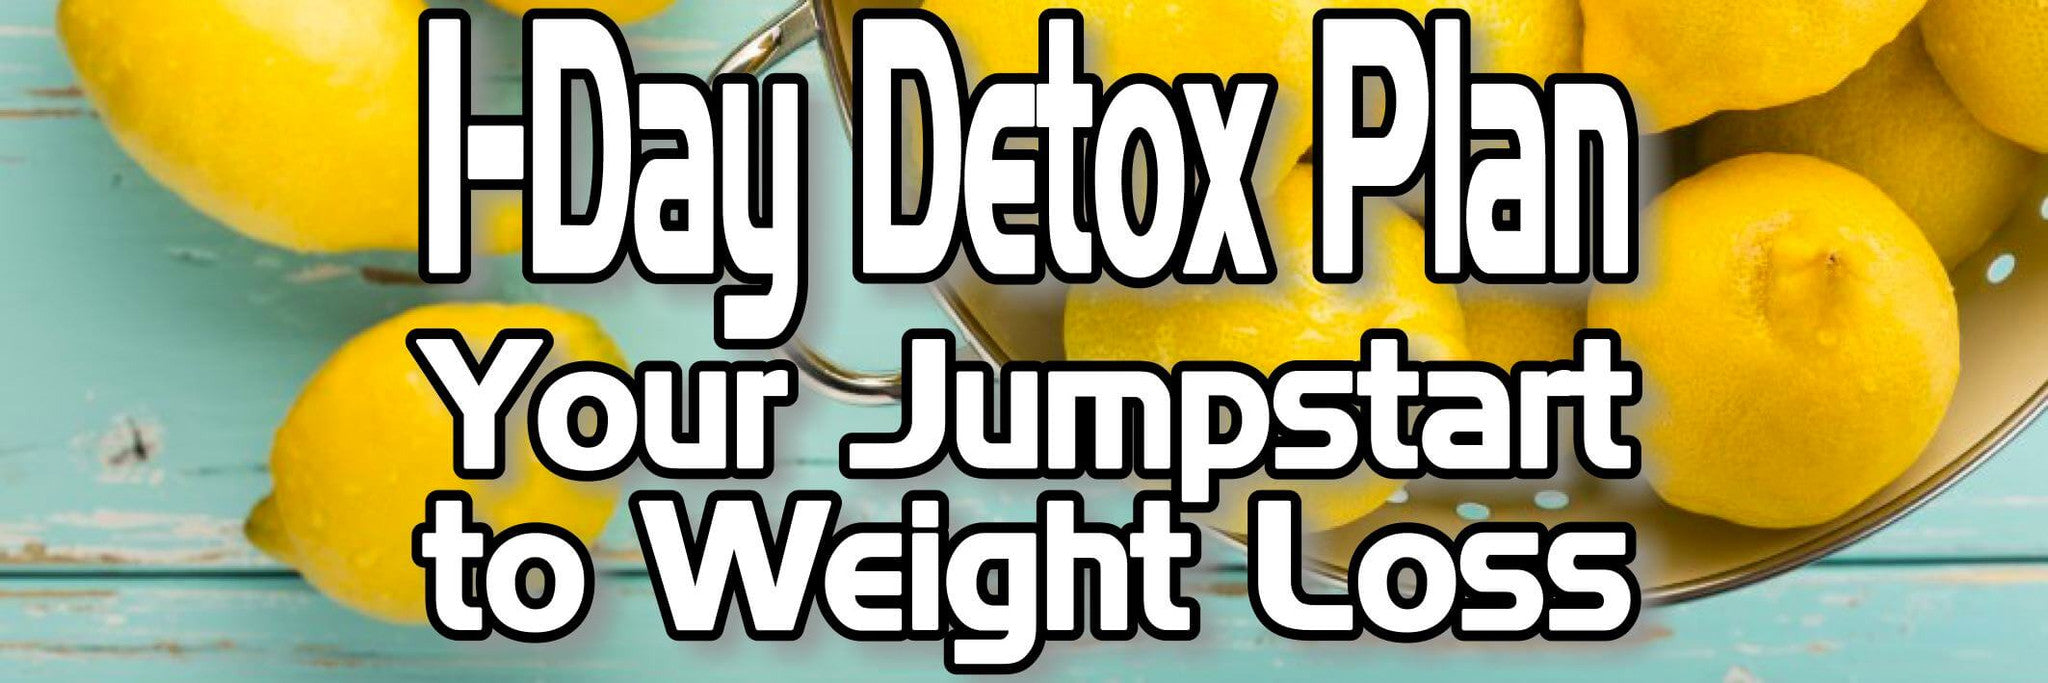 1 Day Detox Plan to Jumpstart Your Weight Loss - Eternal Delight